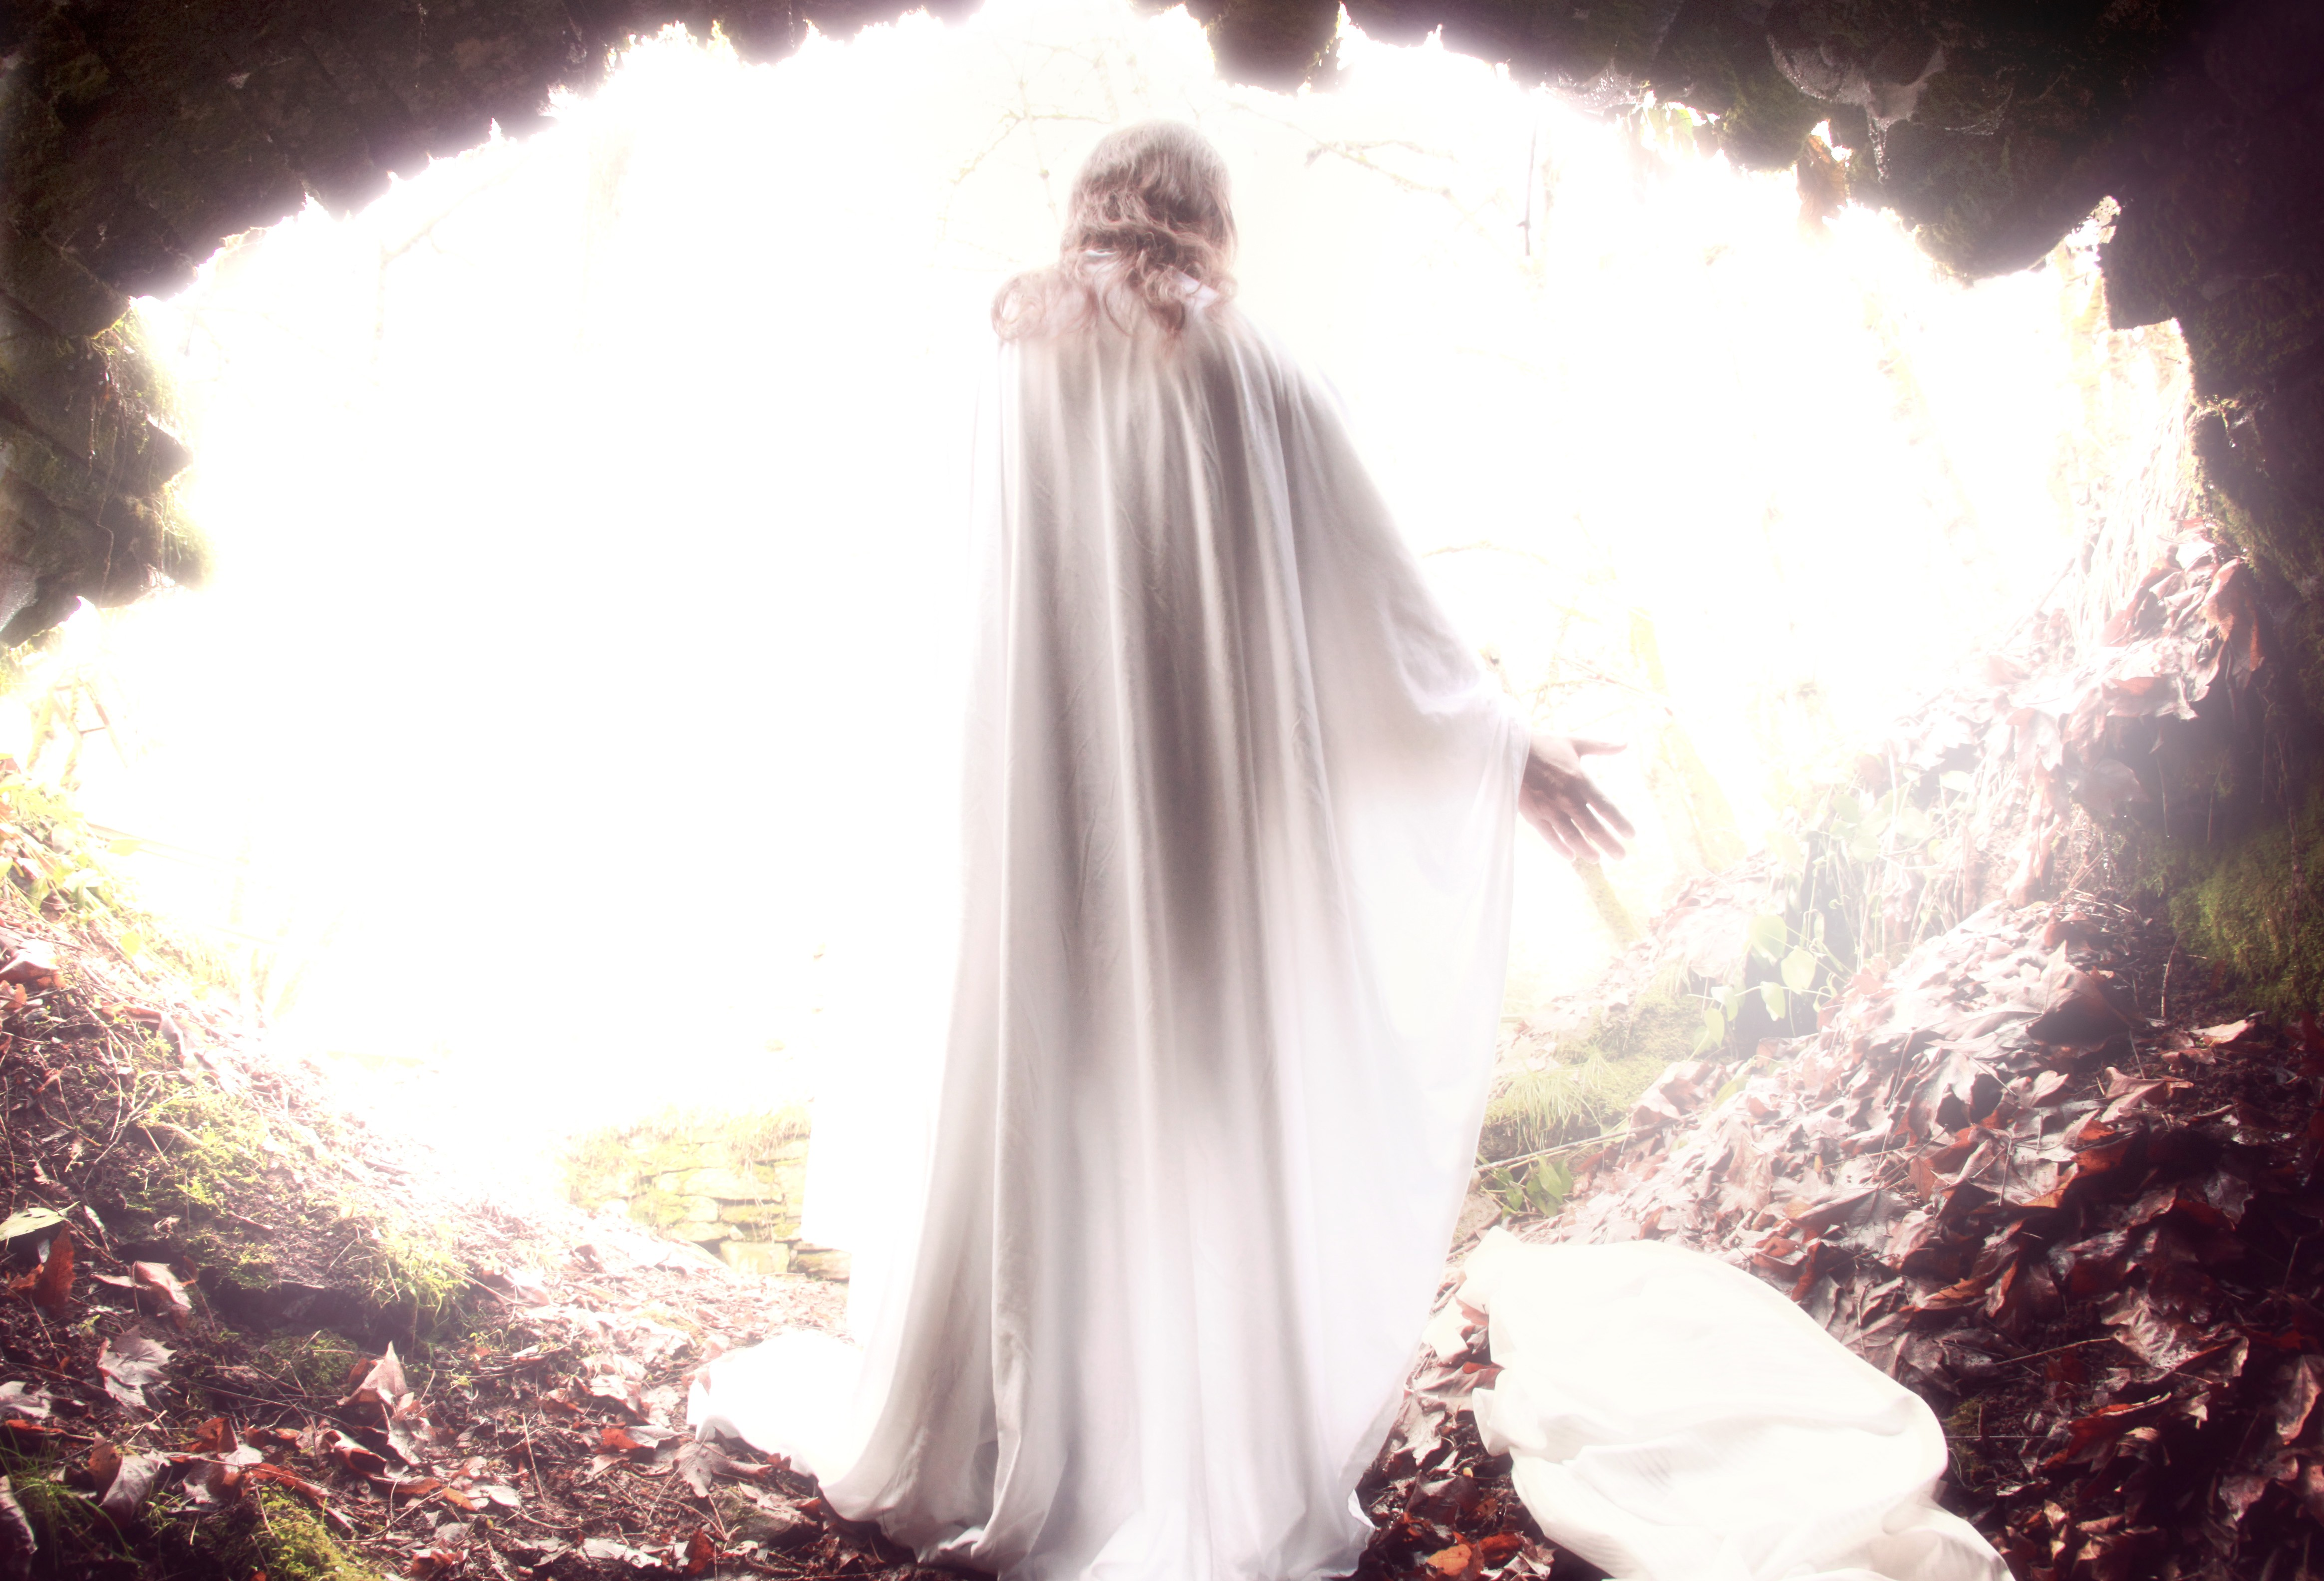 Resurrection Happy Easter Jesus Risen Hd Wallpaper Background 4656x3168